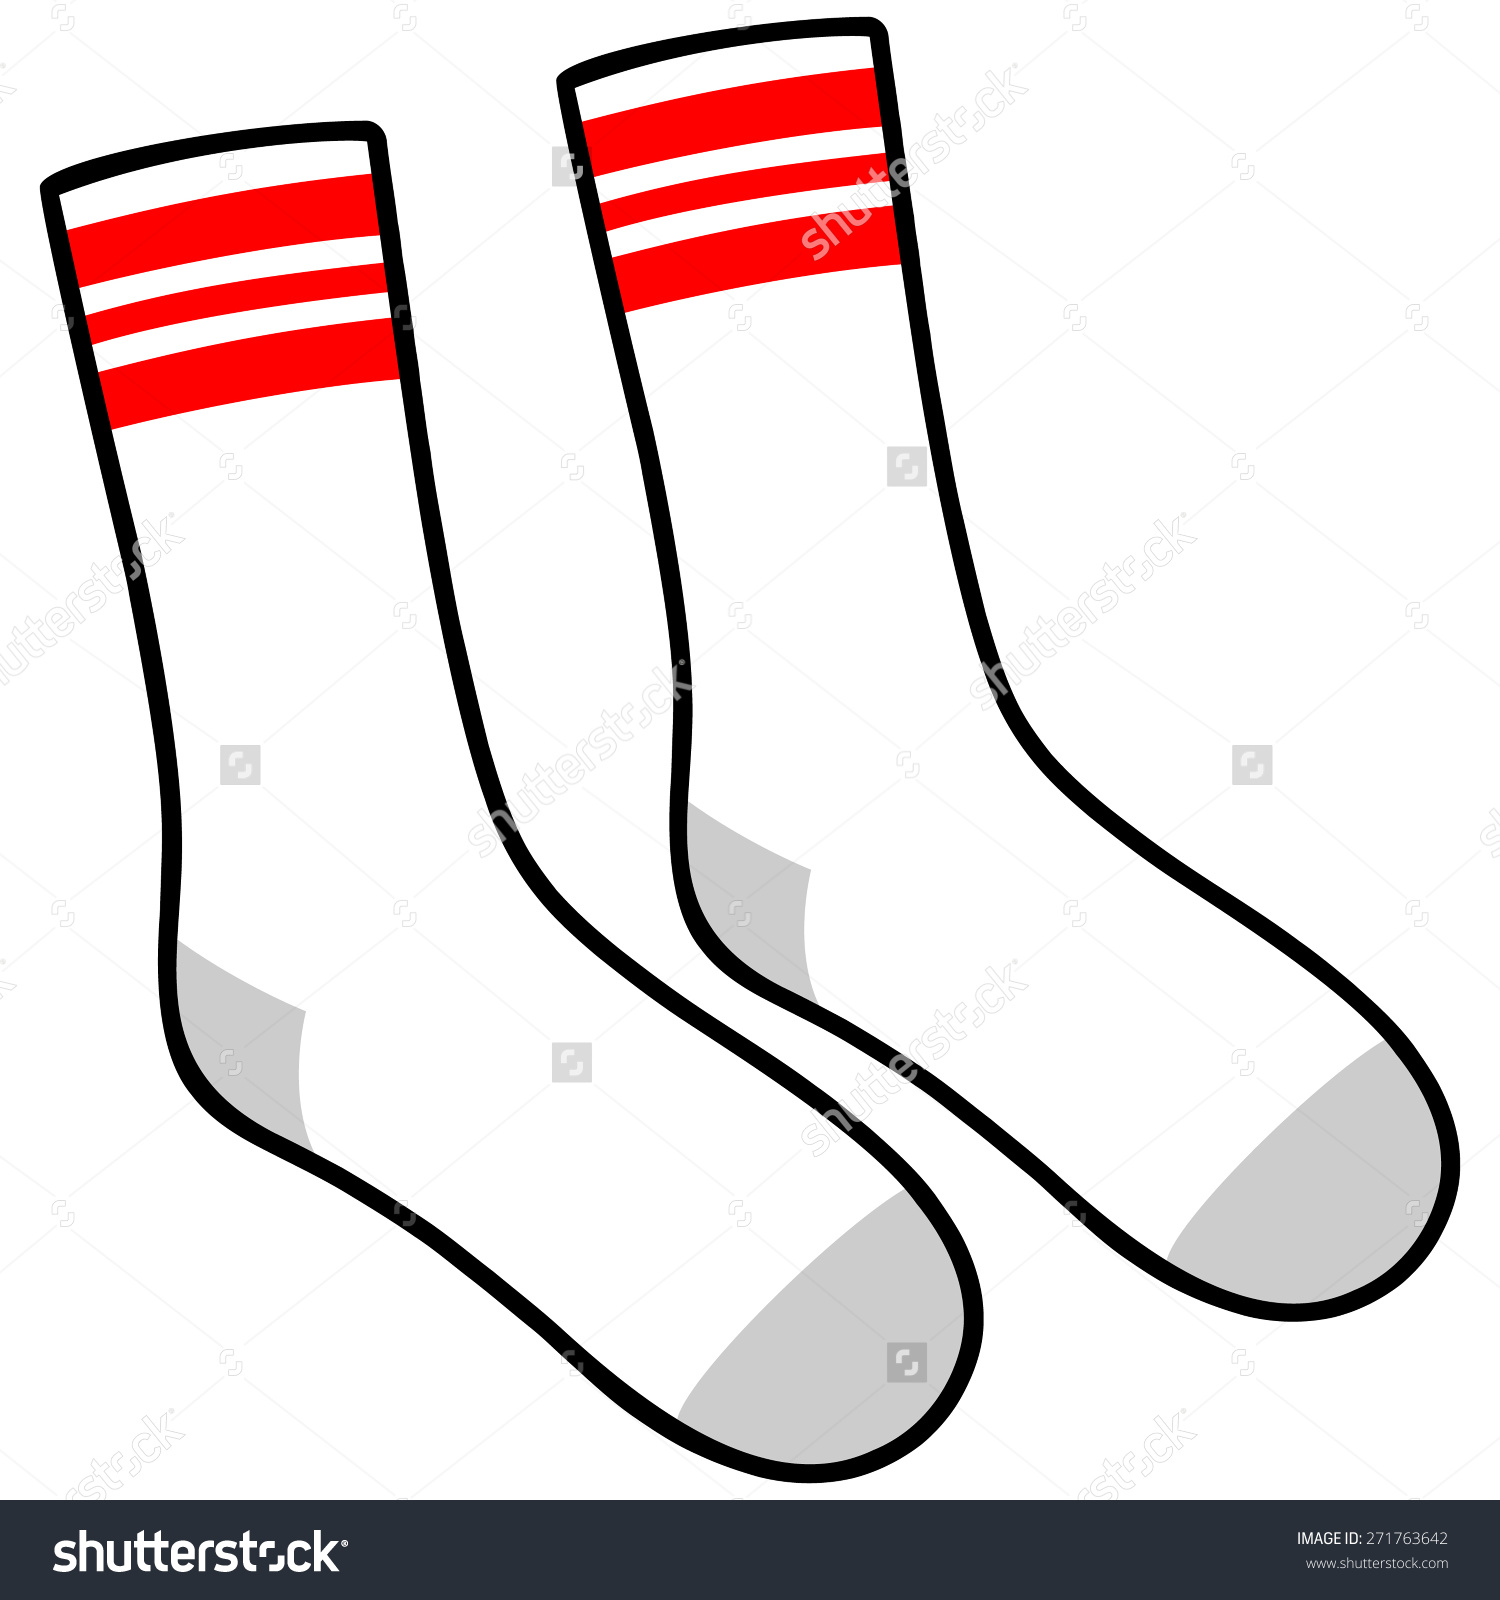 sport sock clipart clipground clip art softball free clipart softball laces